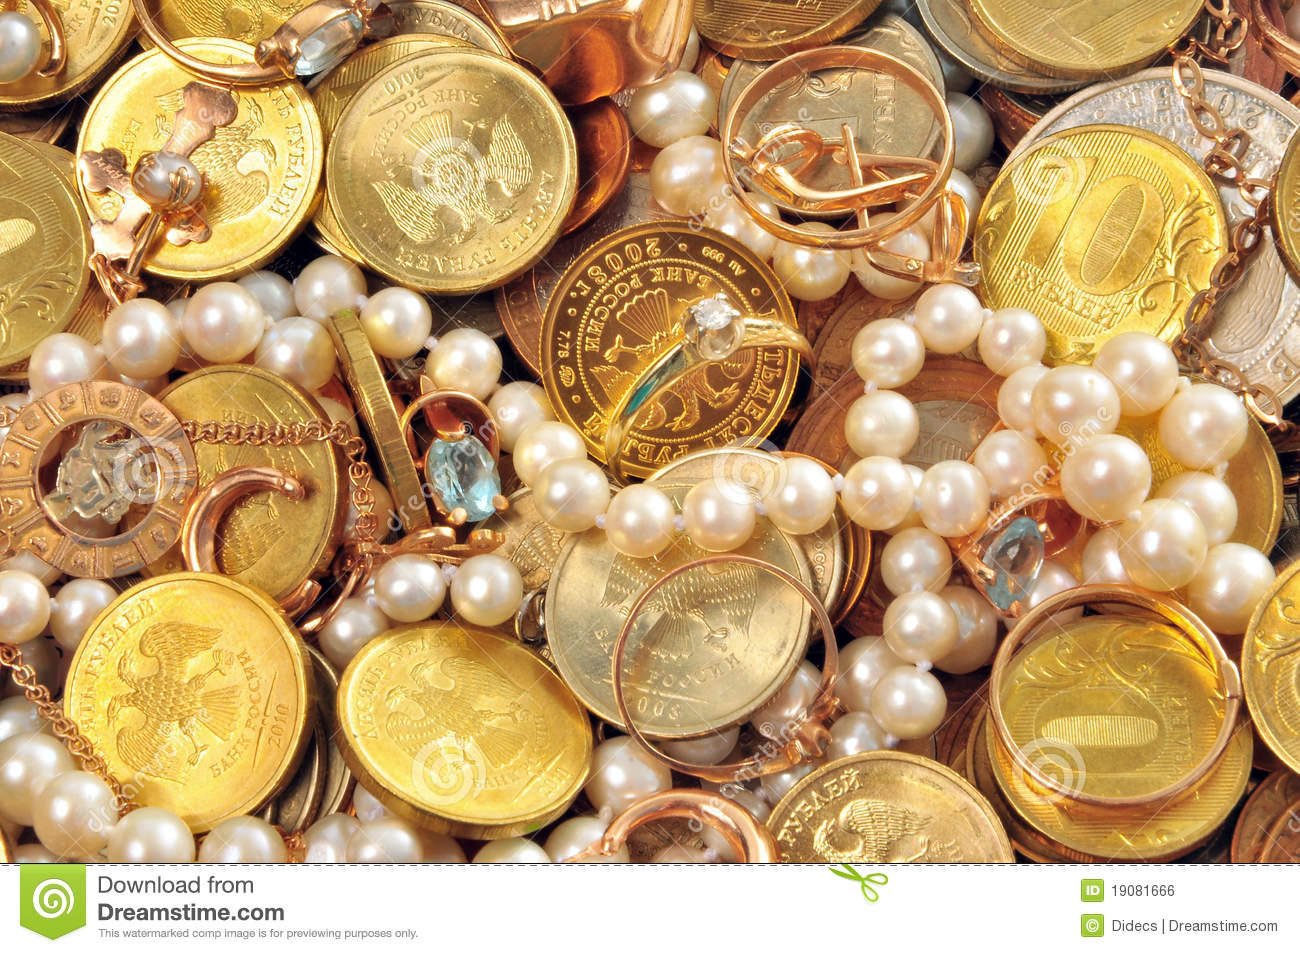 Money And Valuable Royalty Free Stock Image - Image: 19081666